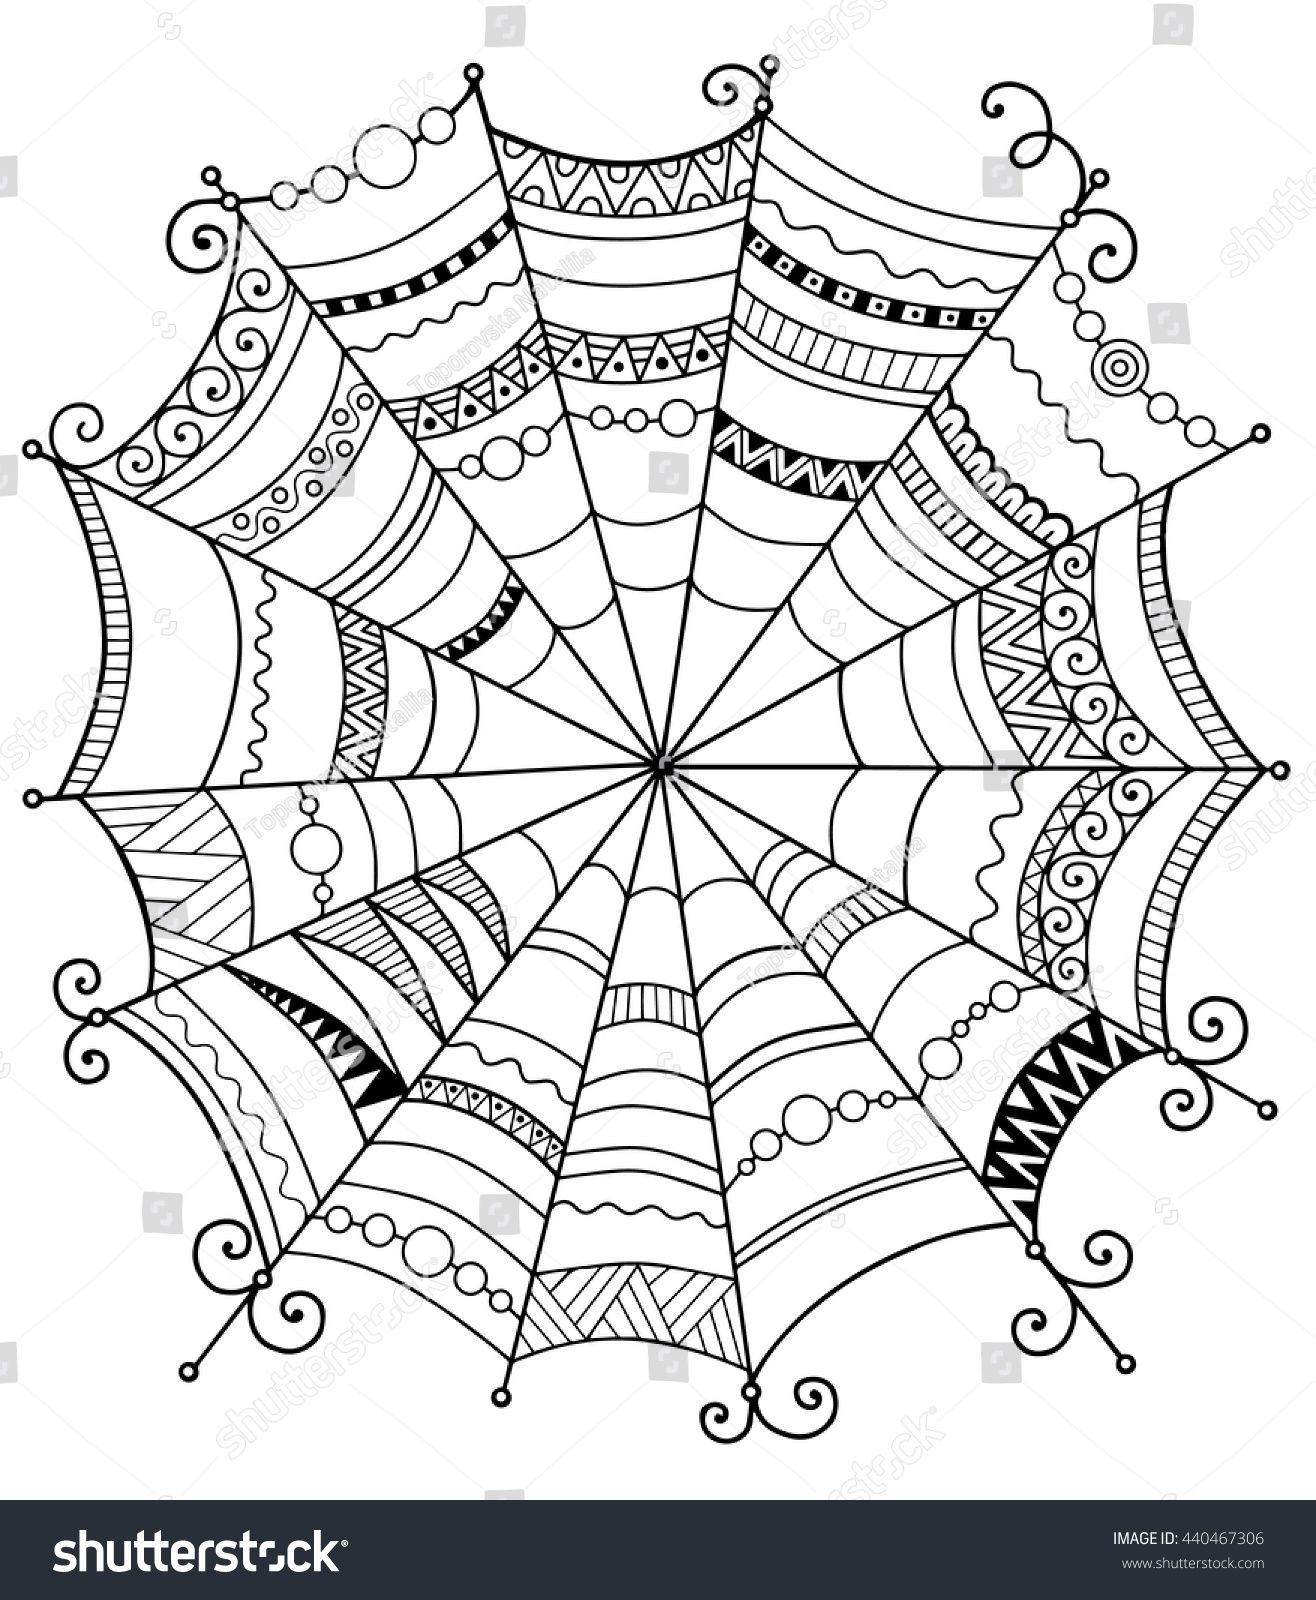 Halloween Vector BackgroundAbstract Web For Textile Design Greeting Cards And Wrapping The Adult ColoringAdult Colouring Pages